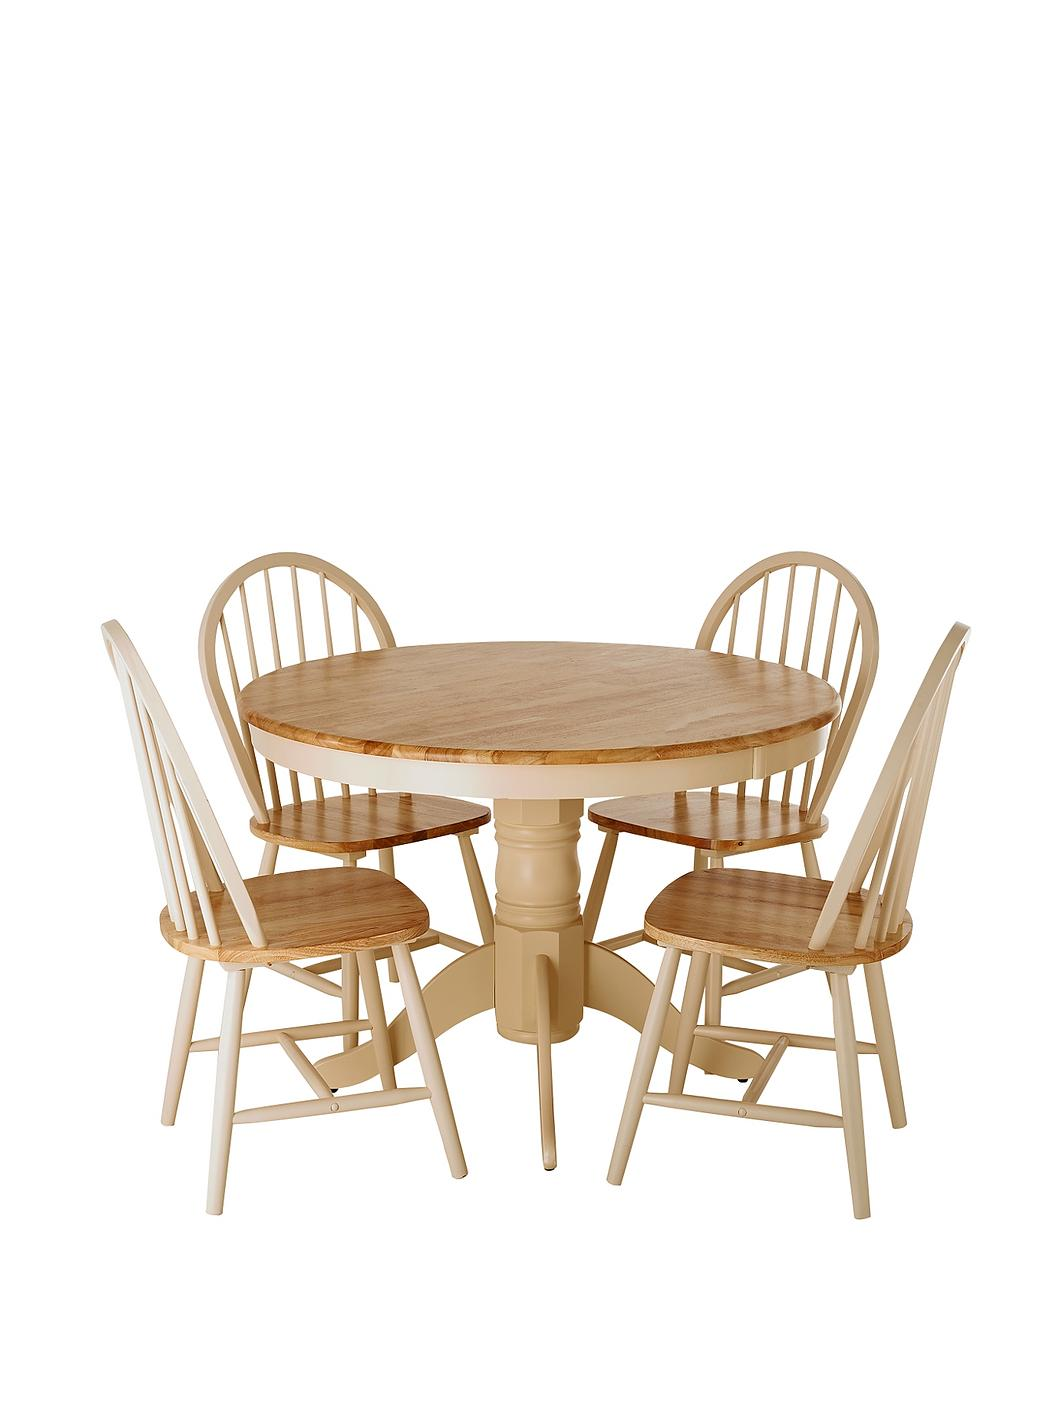 Kildare round dining table and 4 chairs set for Round dining table for 4